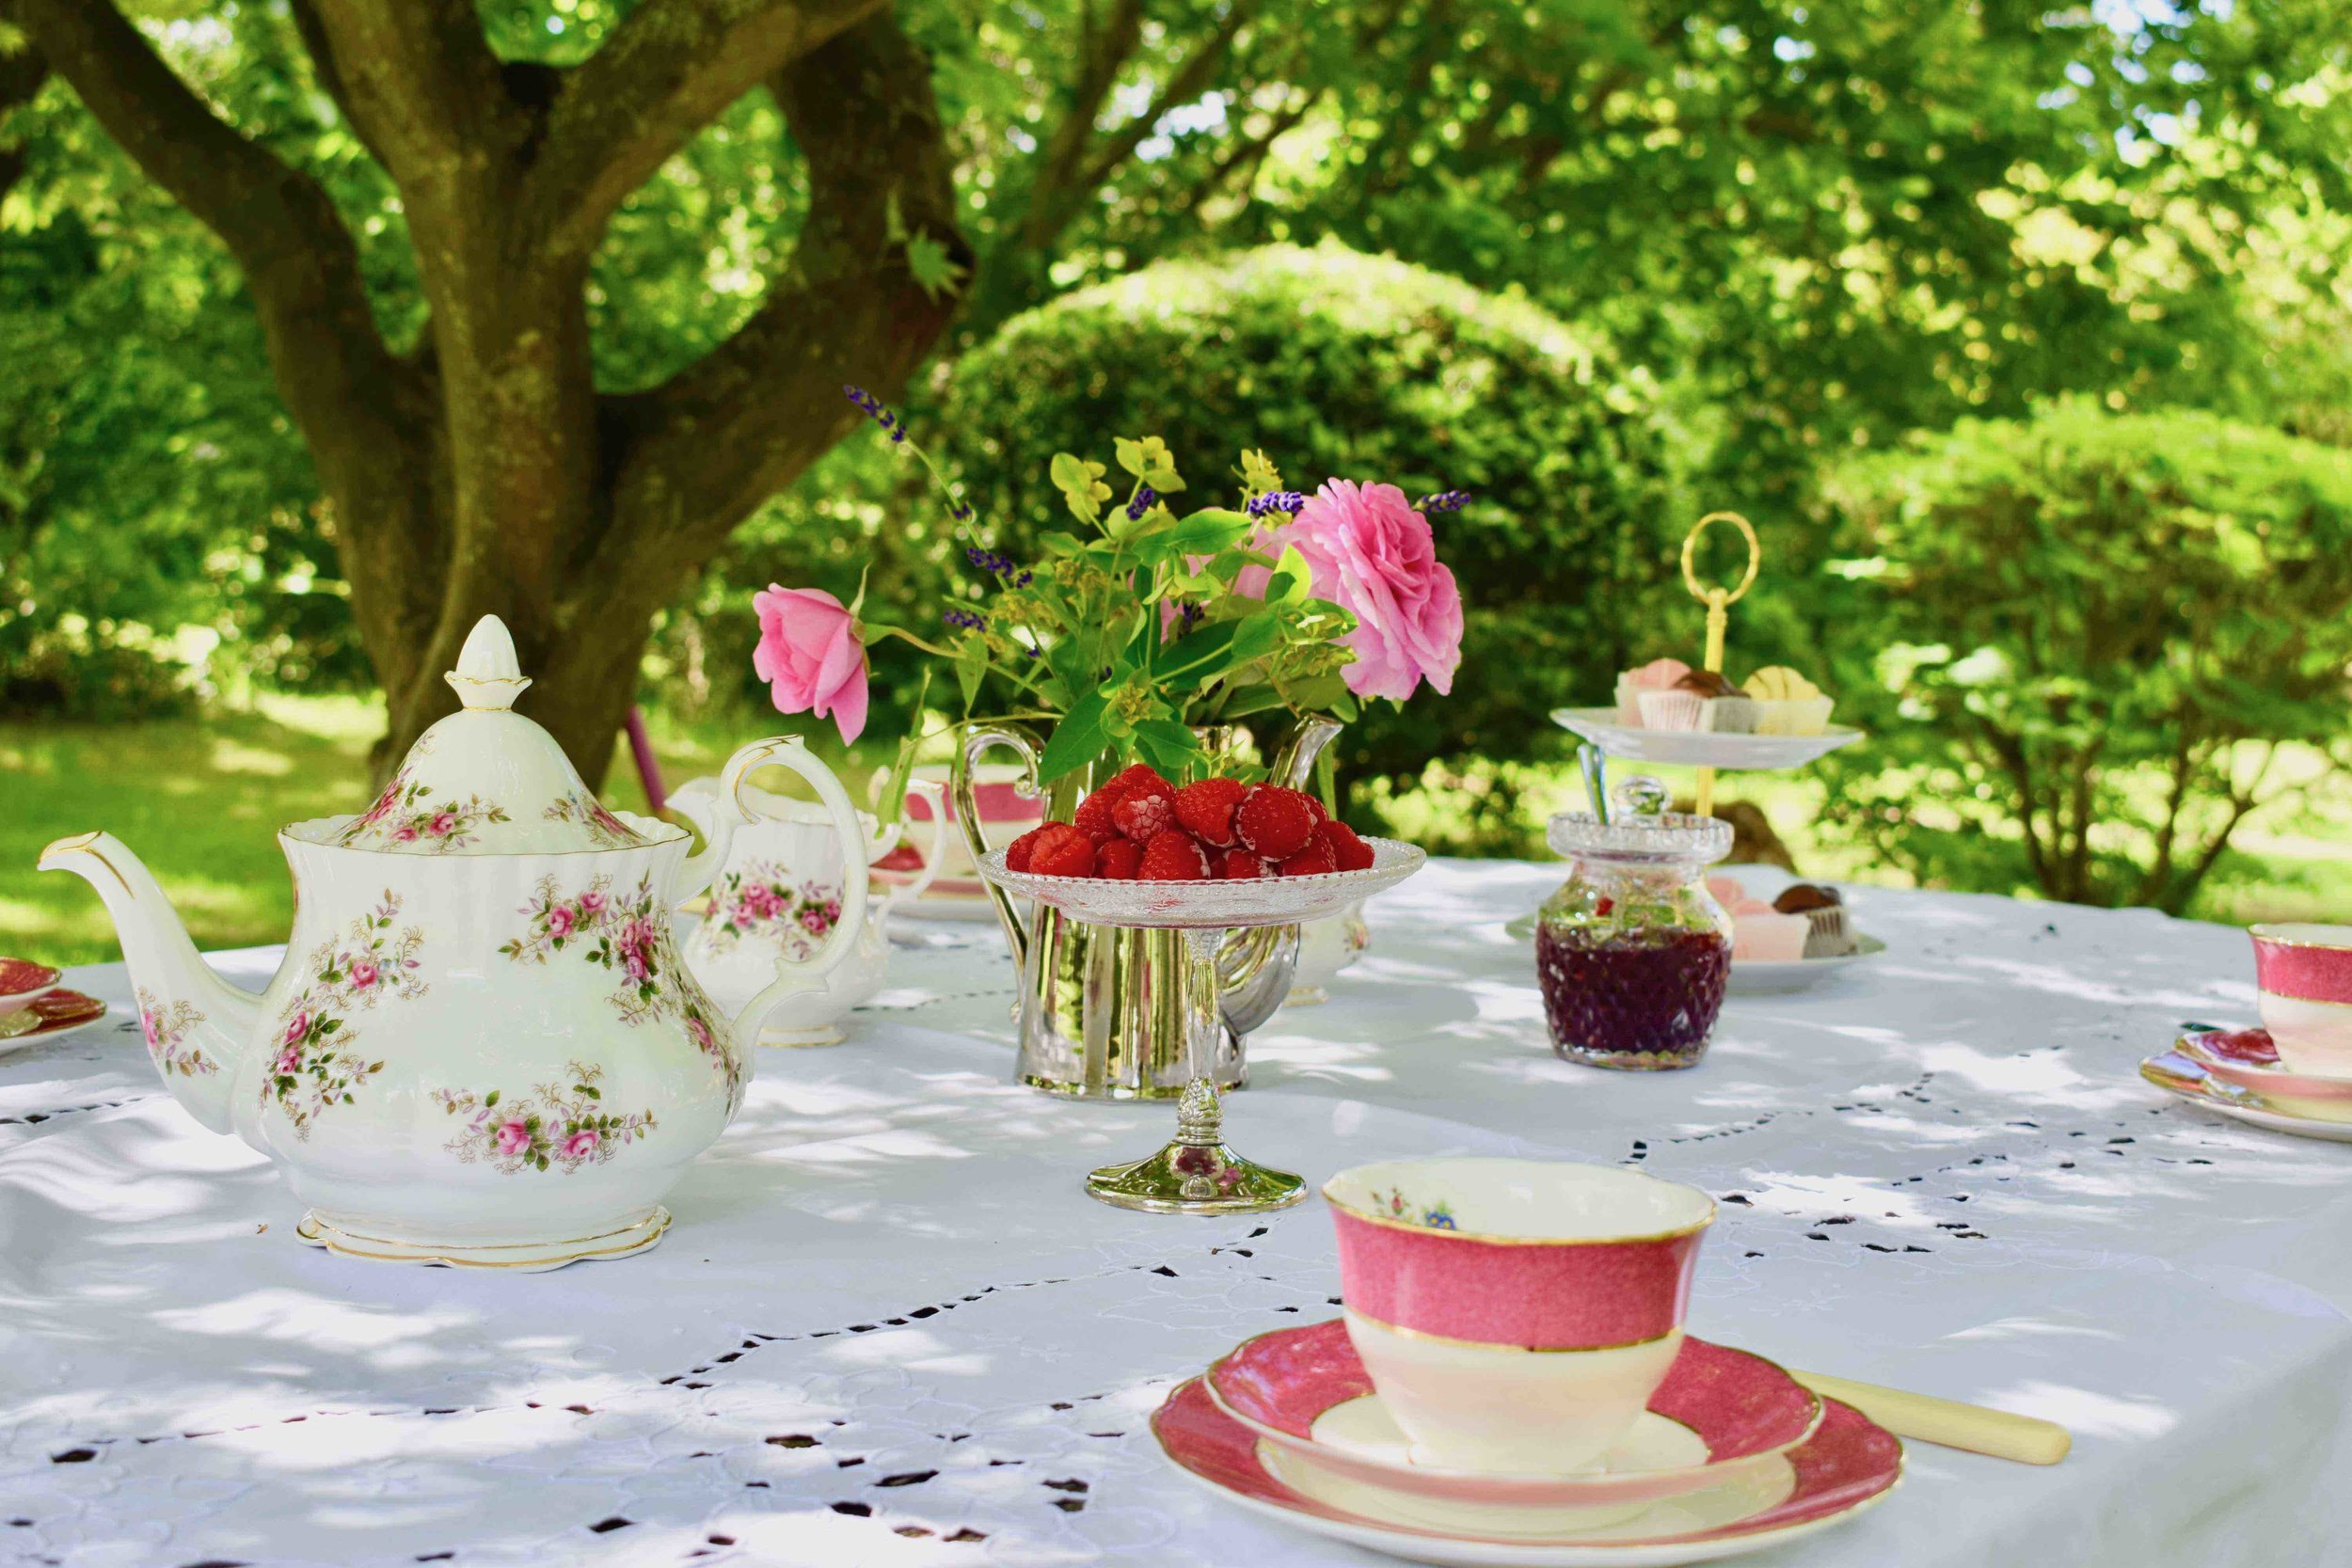 Tea with All Your Friends - Vintage china hire for 10 people, perfect for special birthday celebrations!